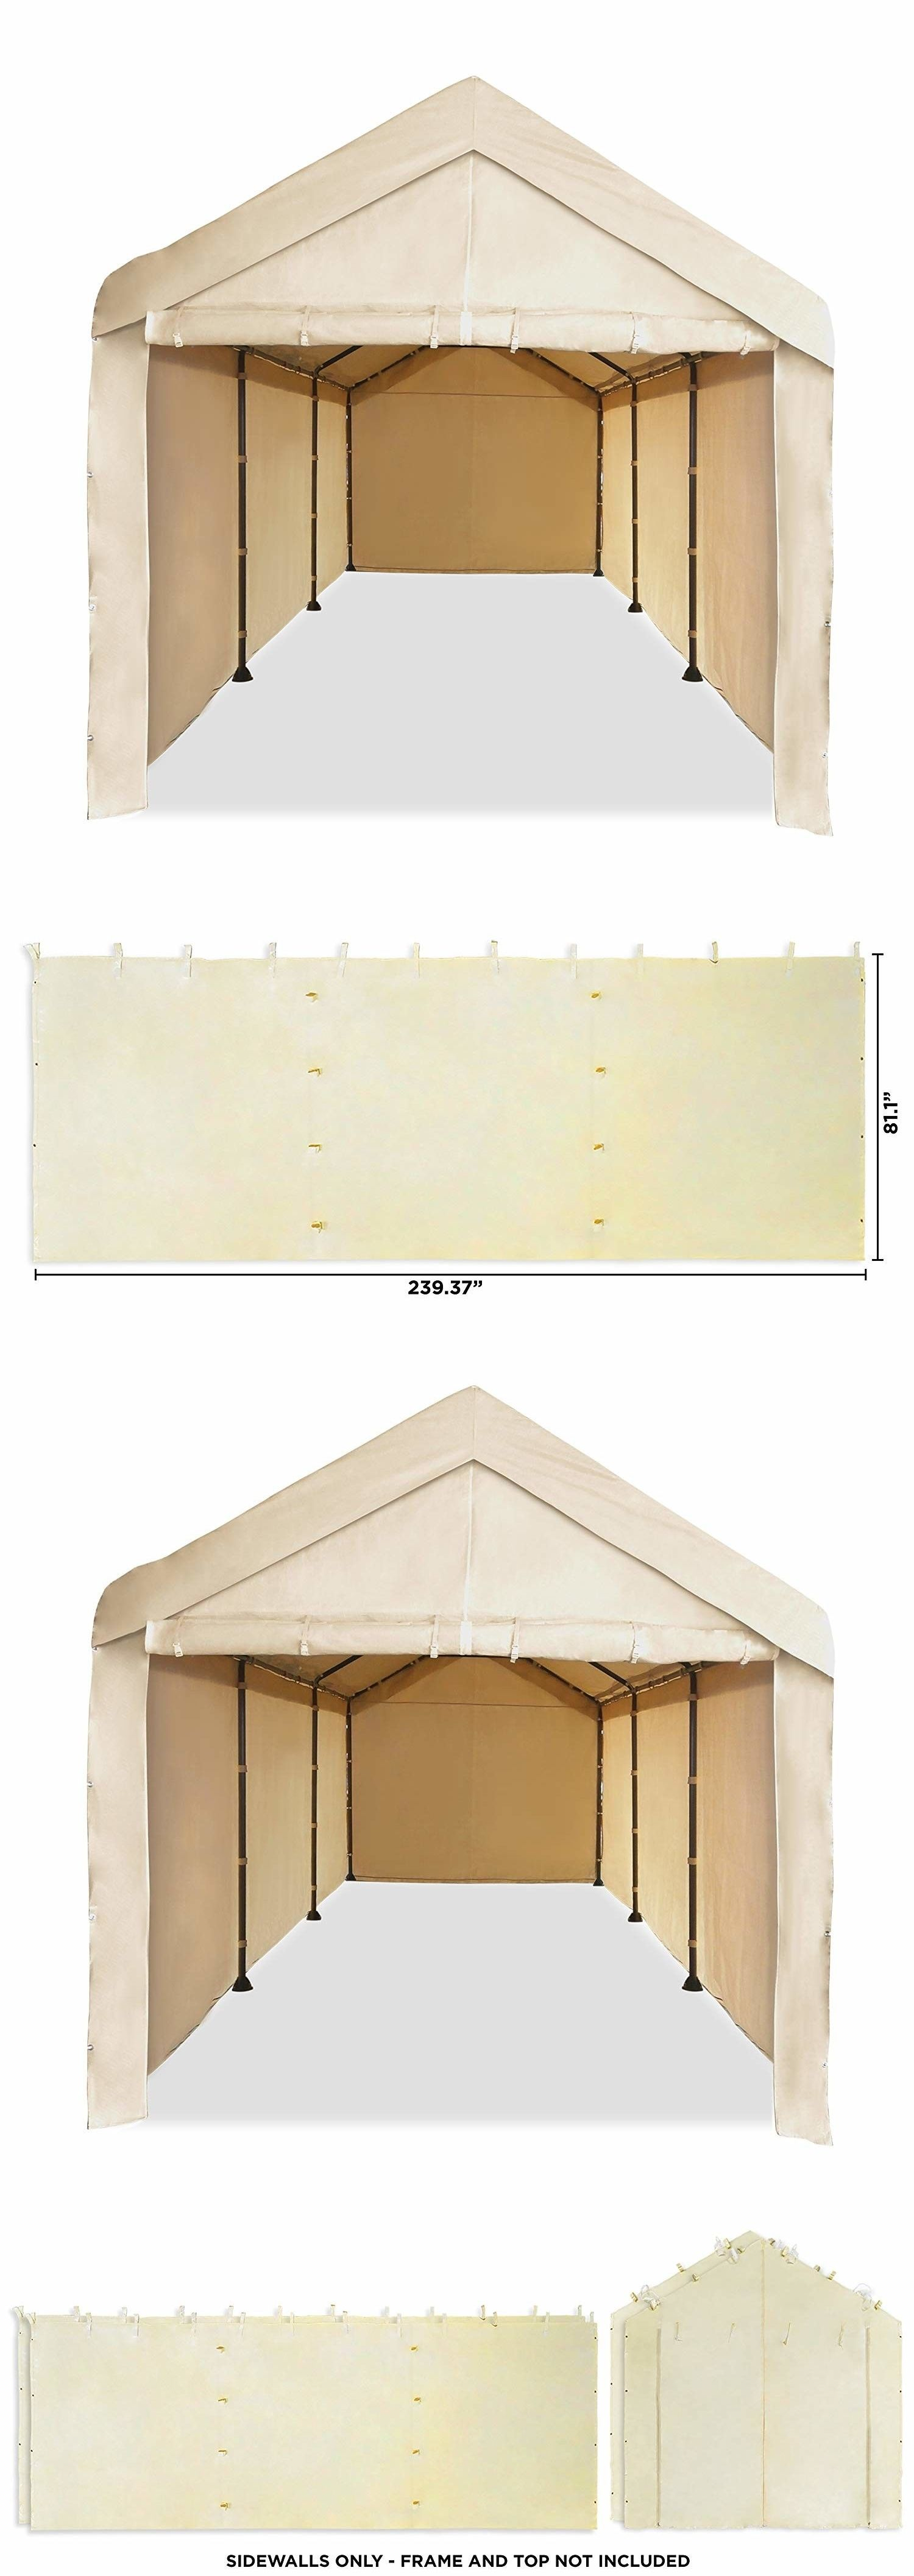 Awnings and Canopies 180992: Canopy Garage Tent Carport Car Shelter ...